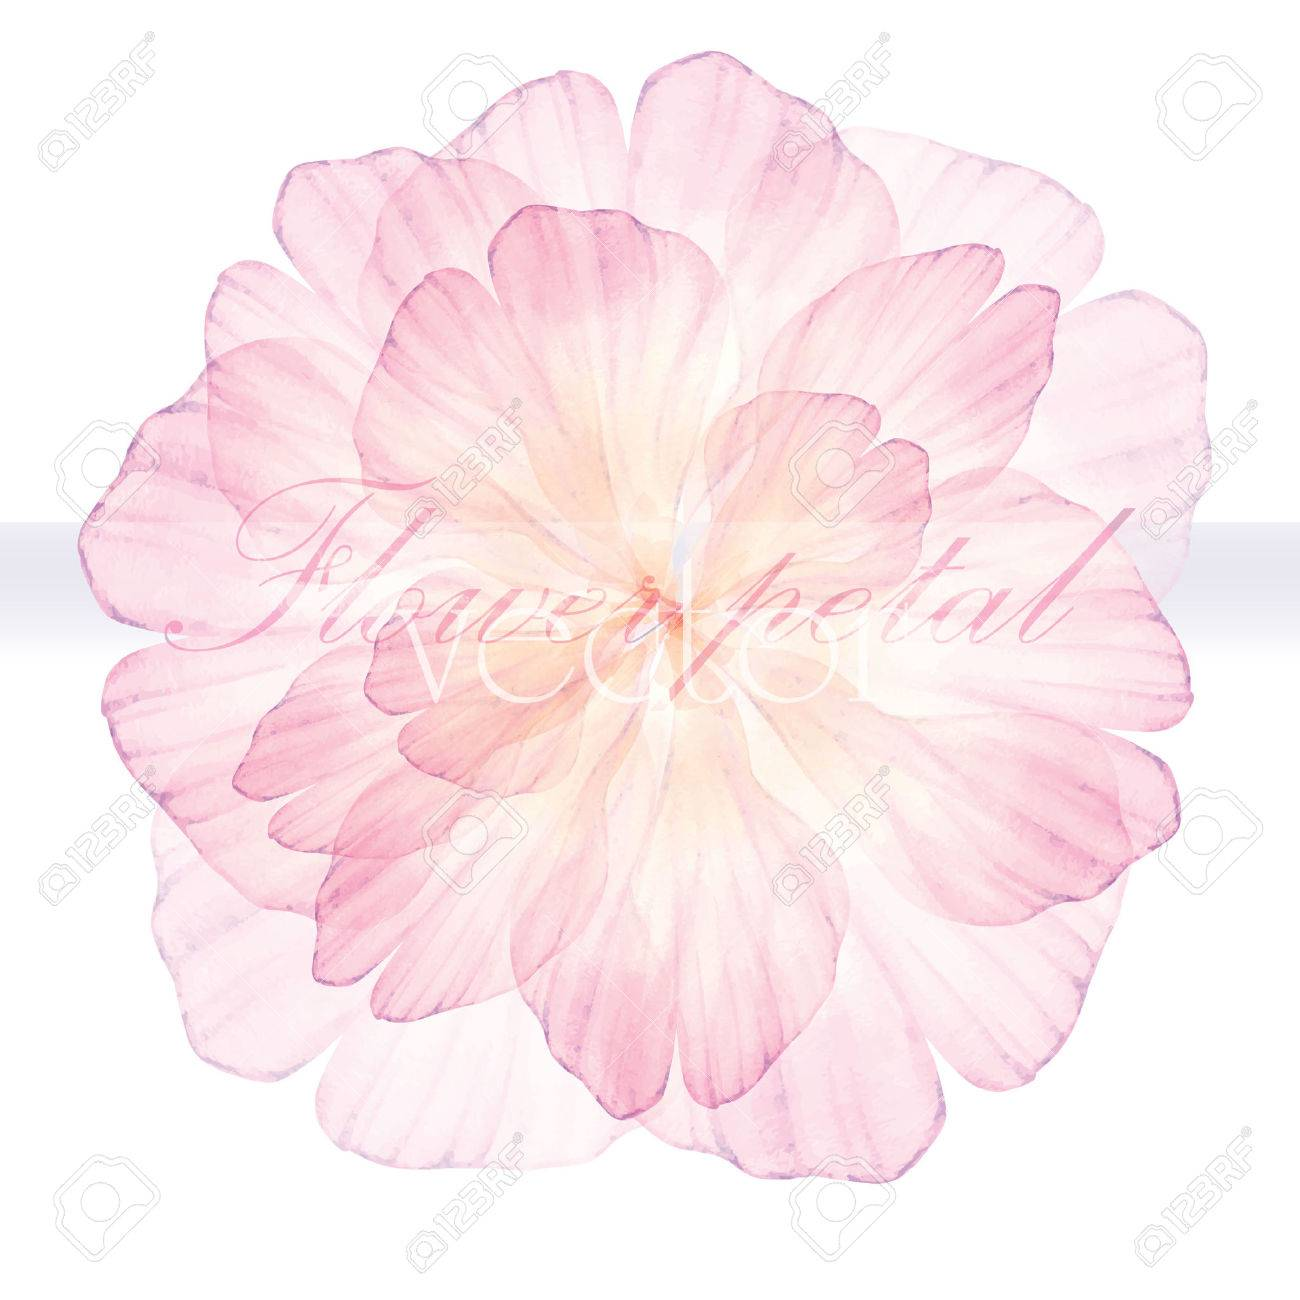 1300x1300 Watercolor Floral Round Patterns. Pink Flower. Vectorized